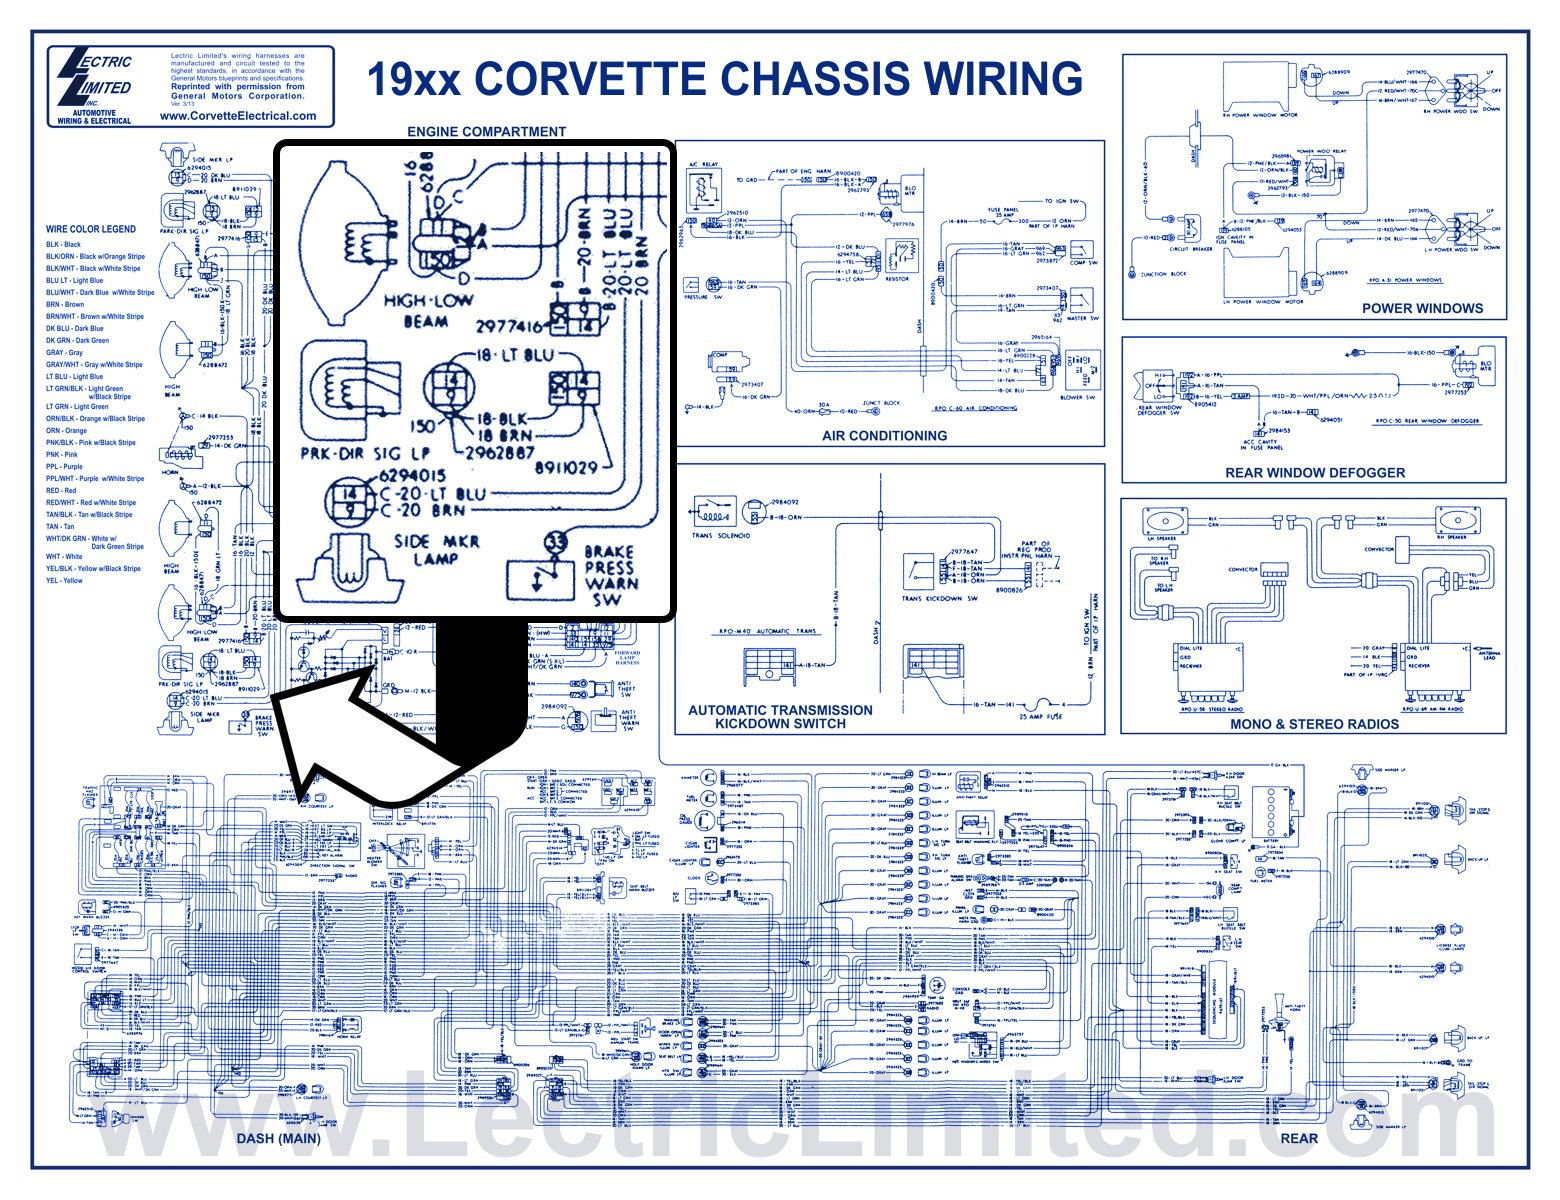 74 corvette wiring diagram miscellaneous products  miscellaneous products